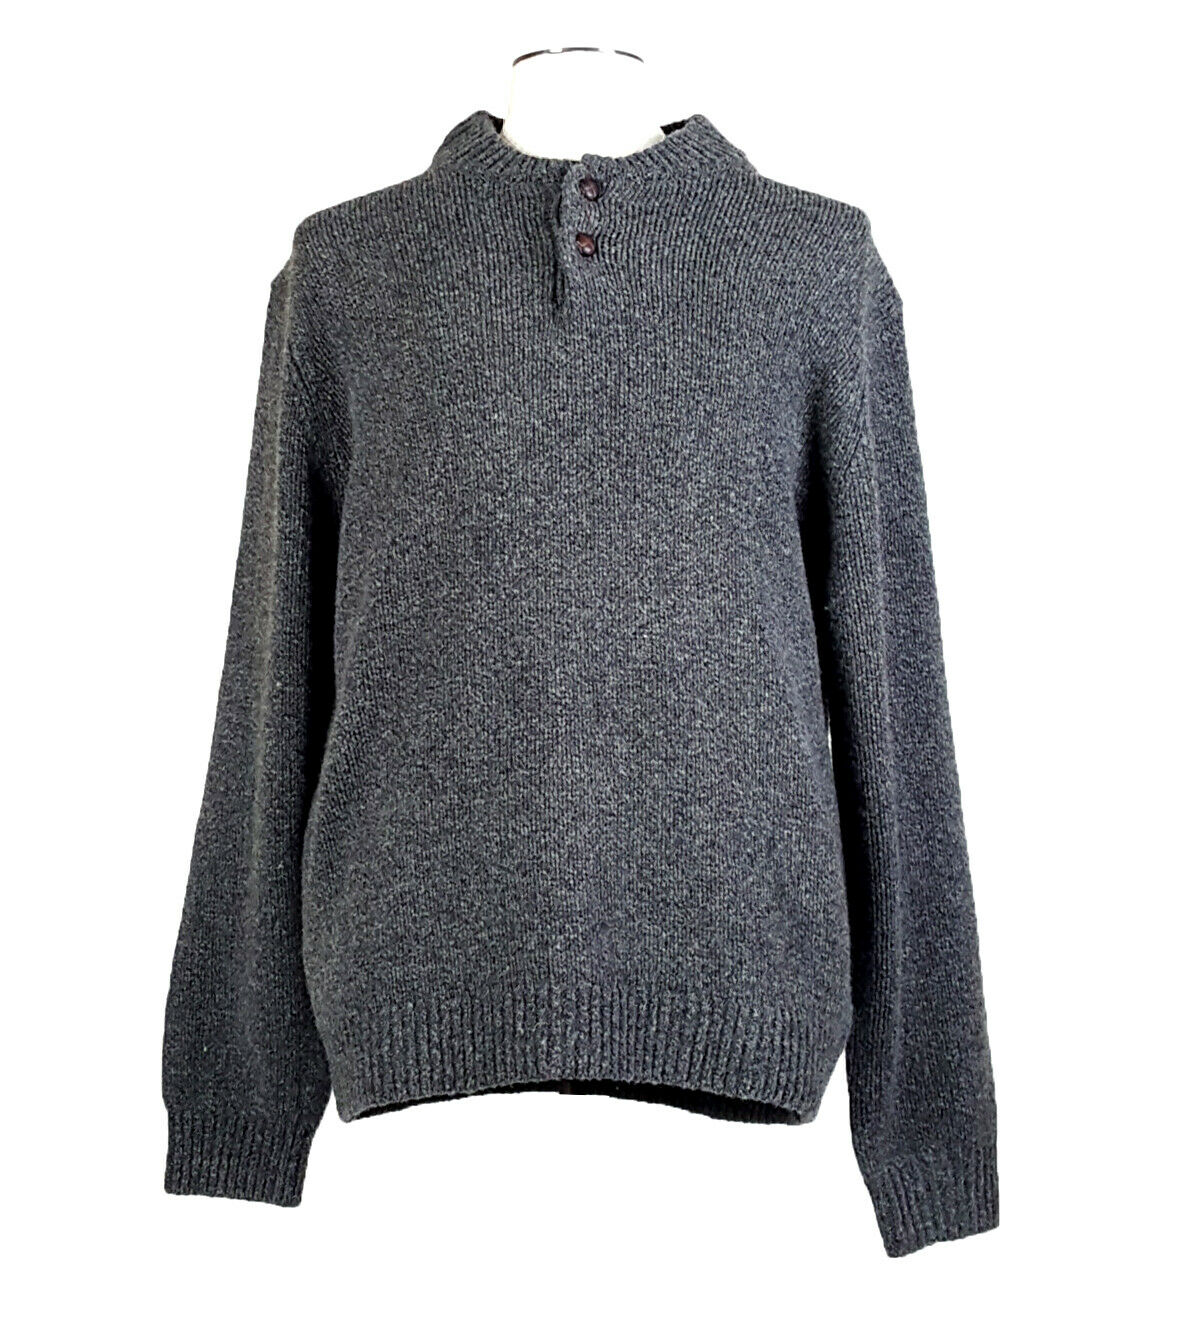 LL BEAN XL Wool Leather Button Sweater Gray - image 1